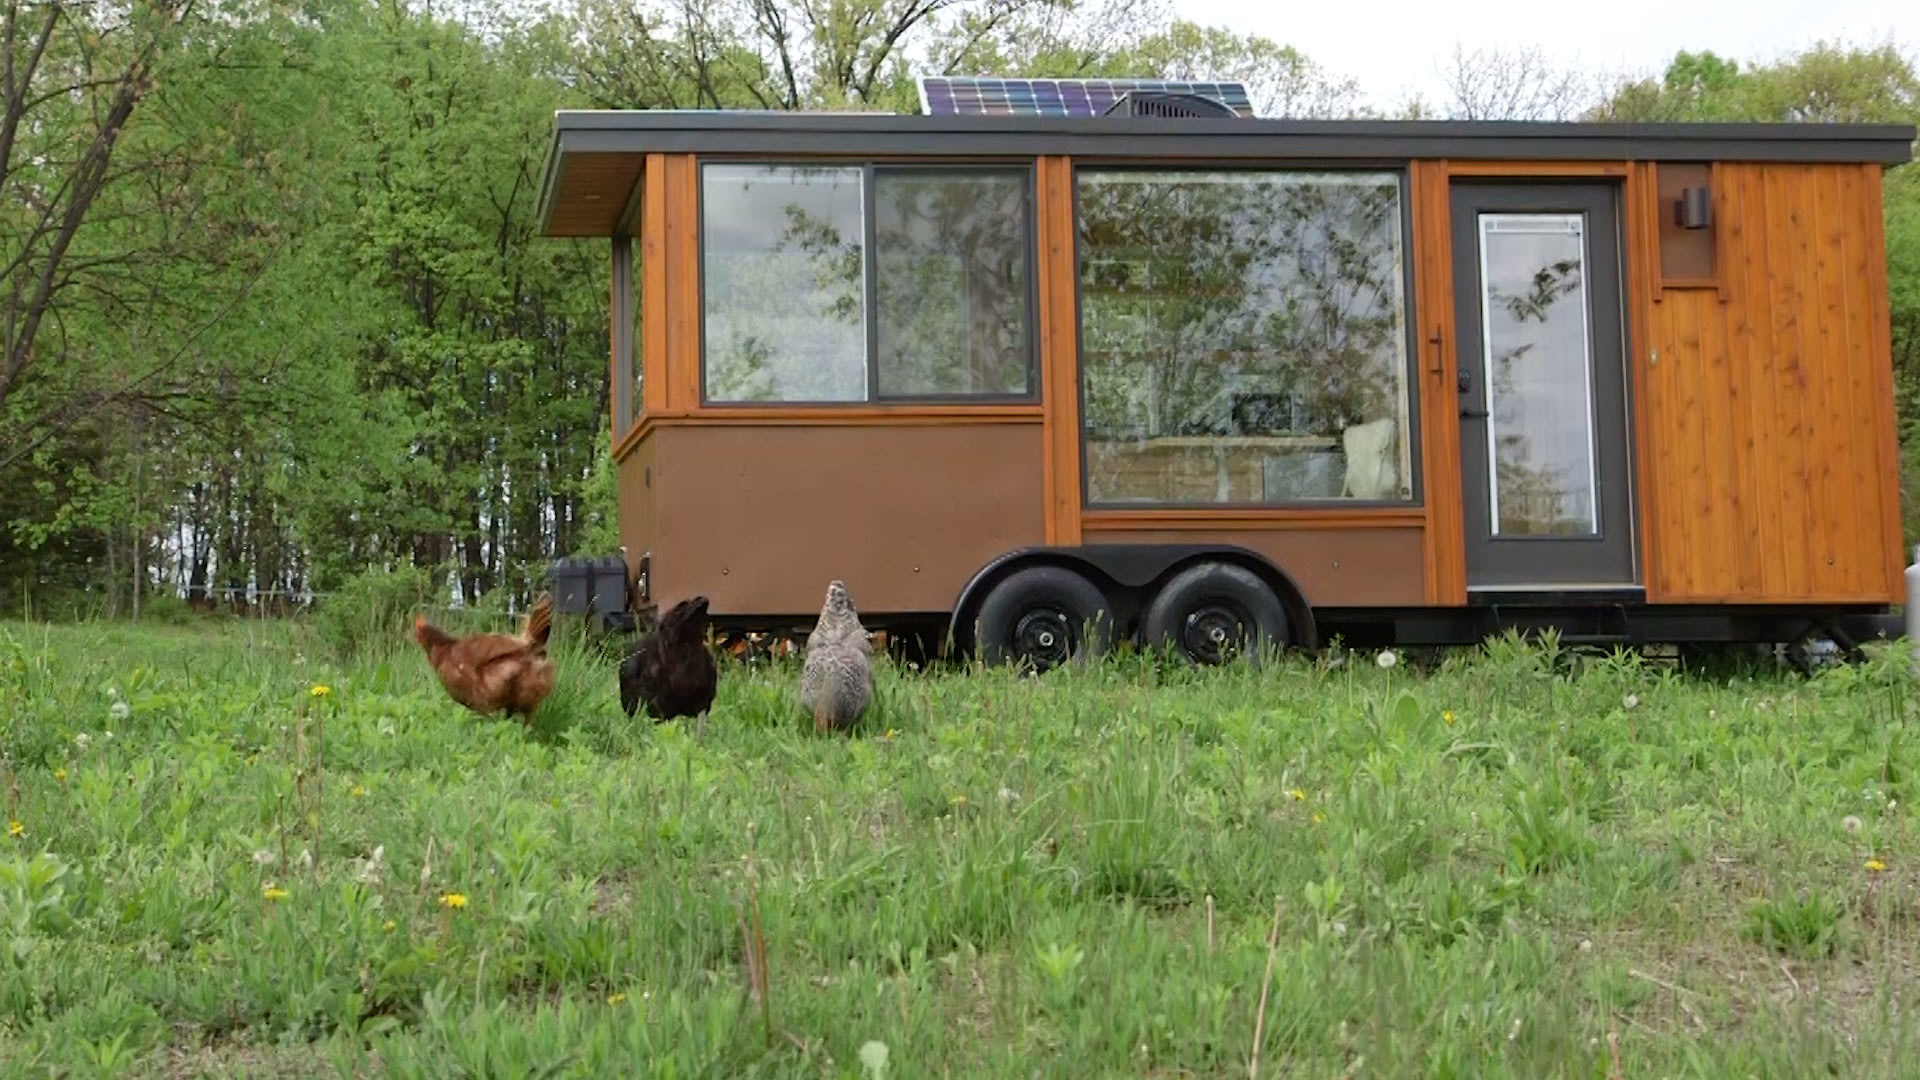 Sleep under the stars in this tiny glass home on Hudson Valley